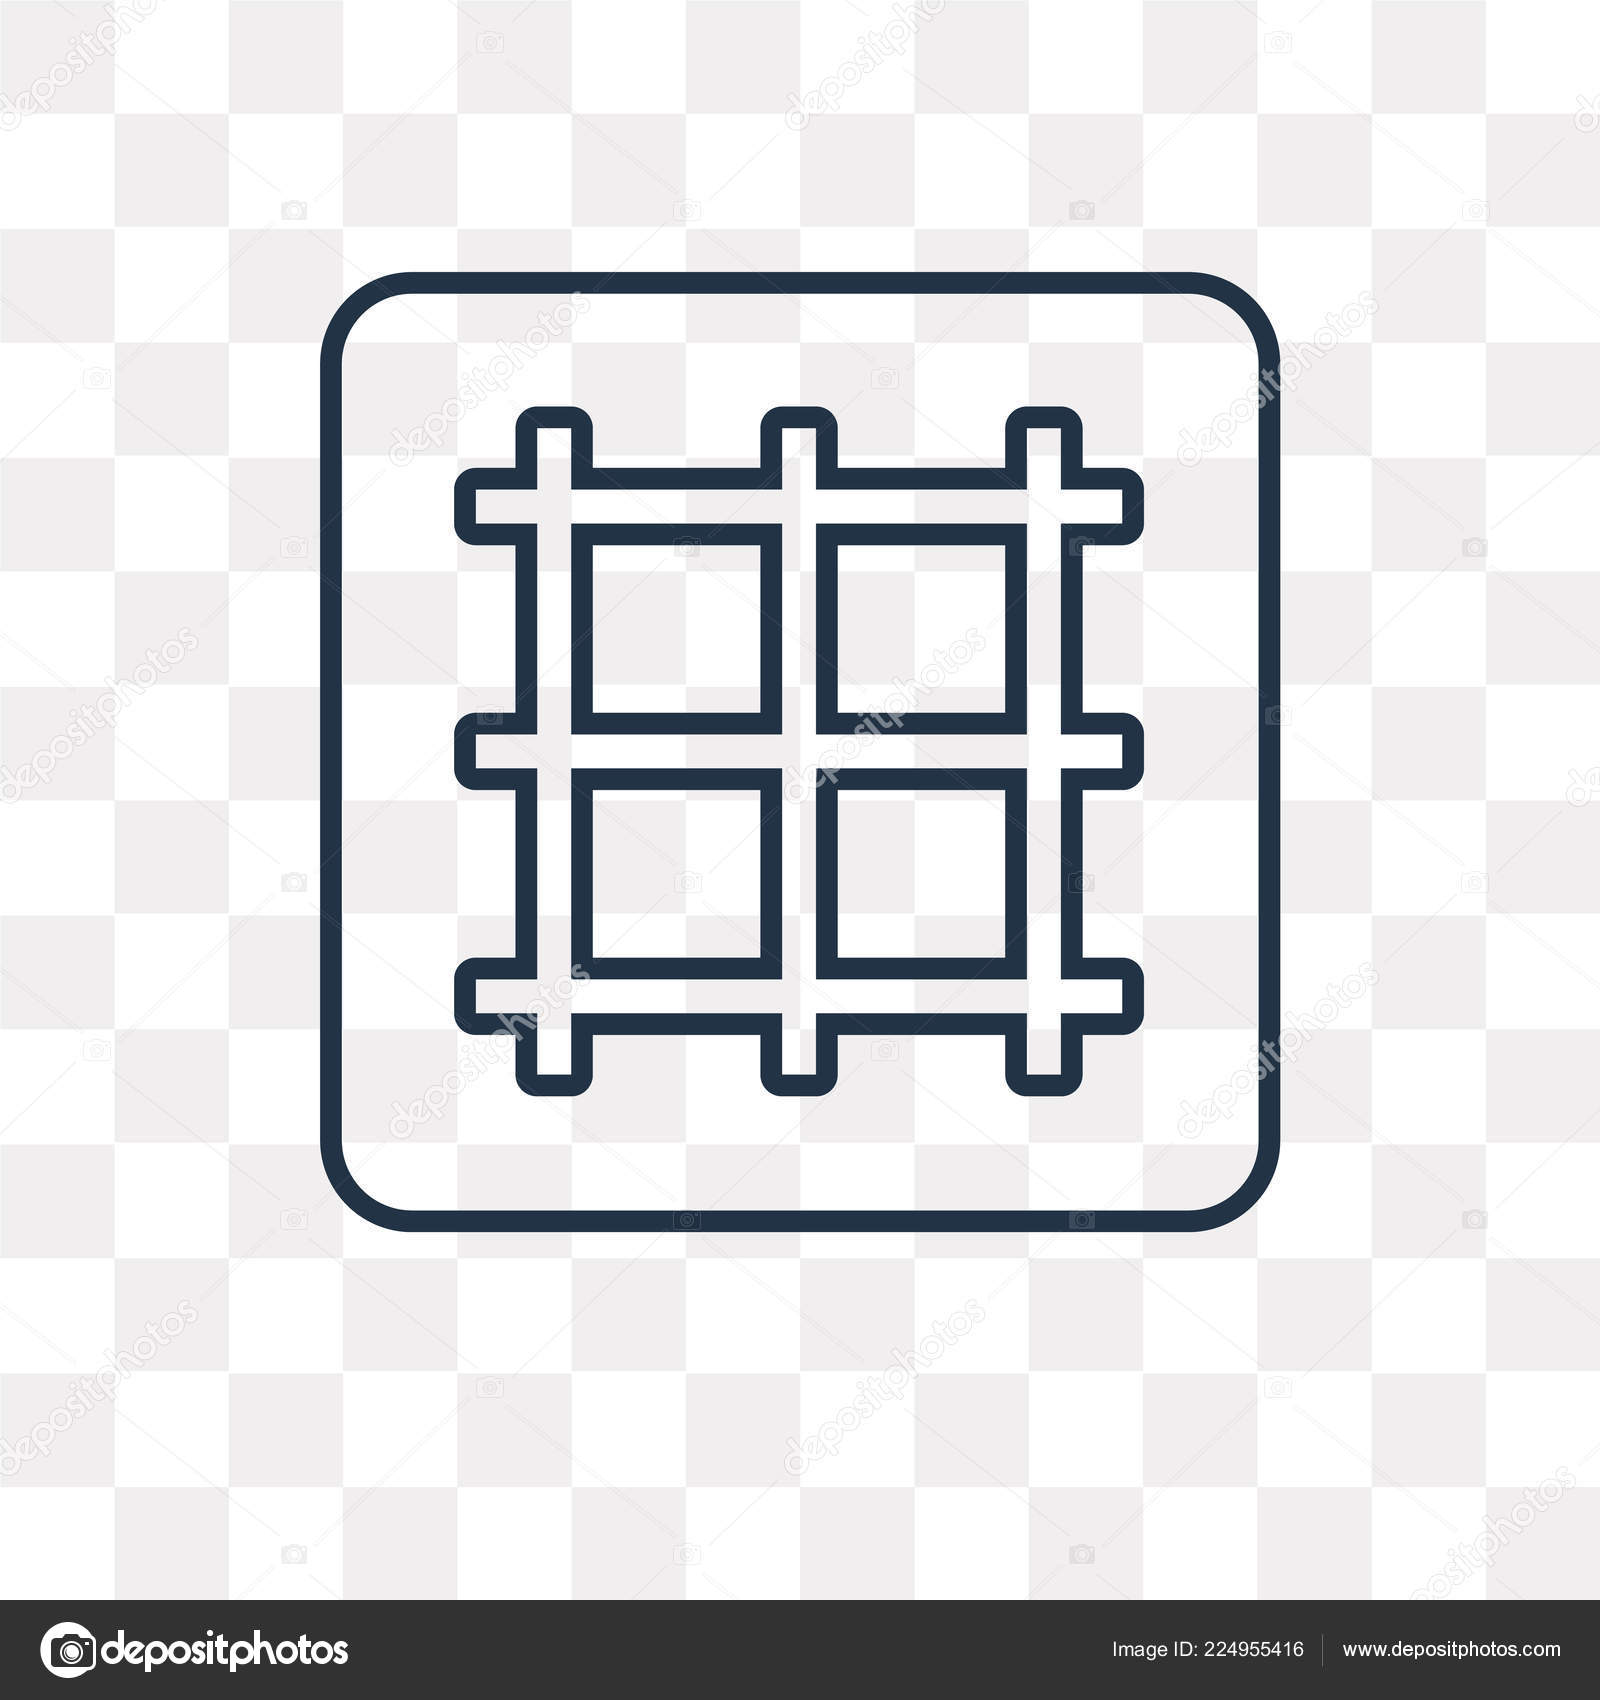 Grid Vector Outline Icon Isolated Transparent Background High